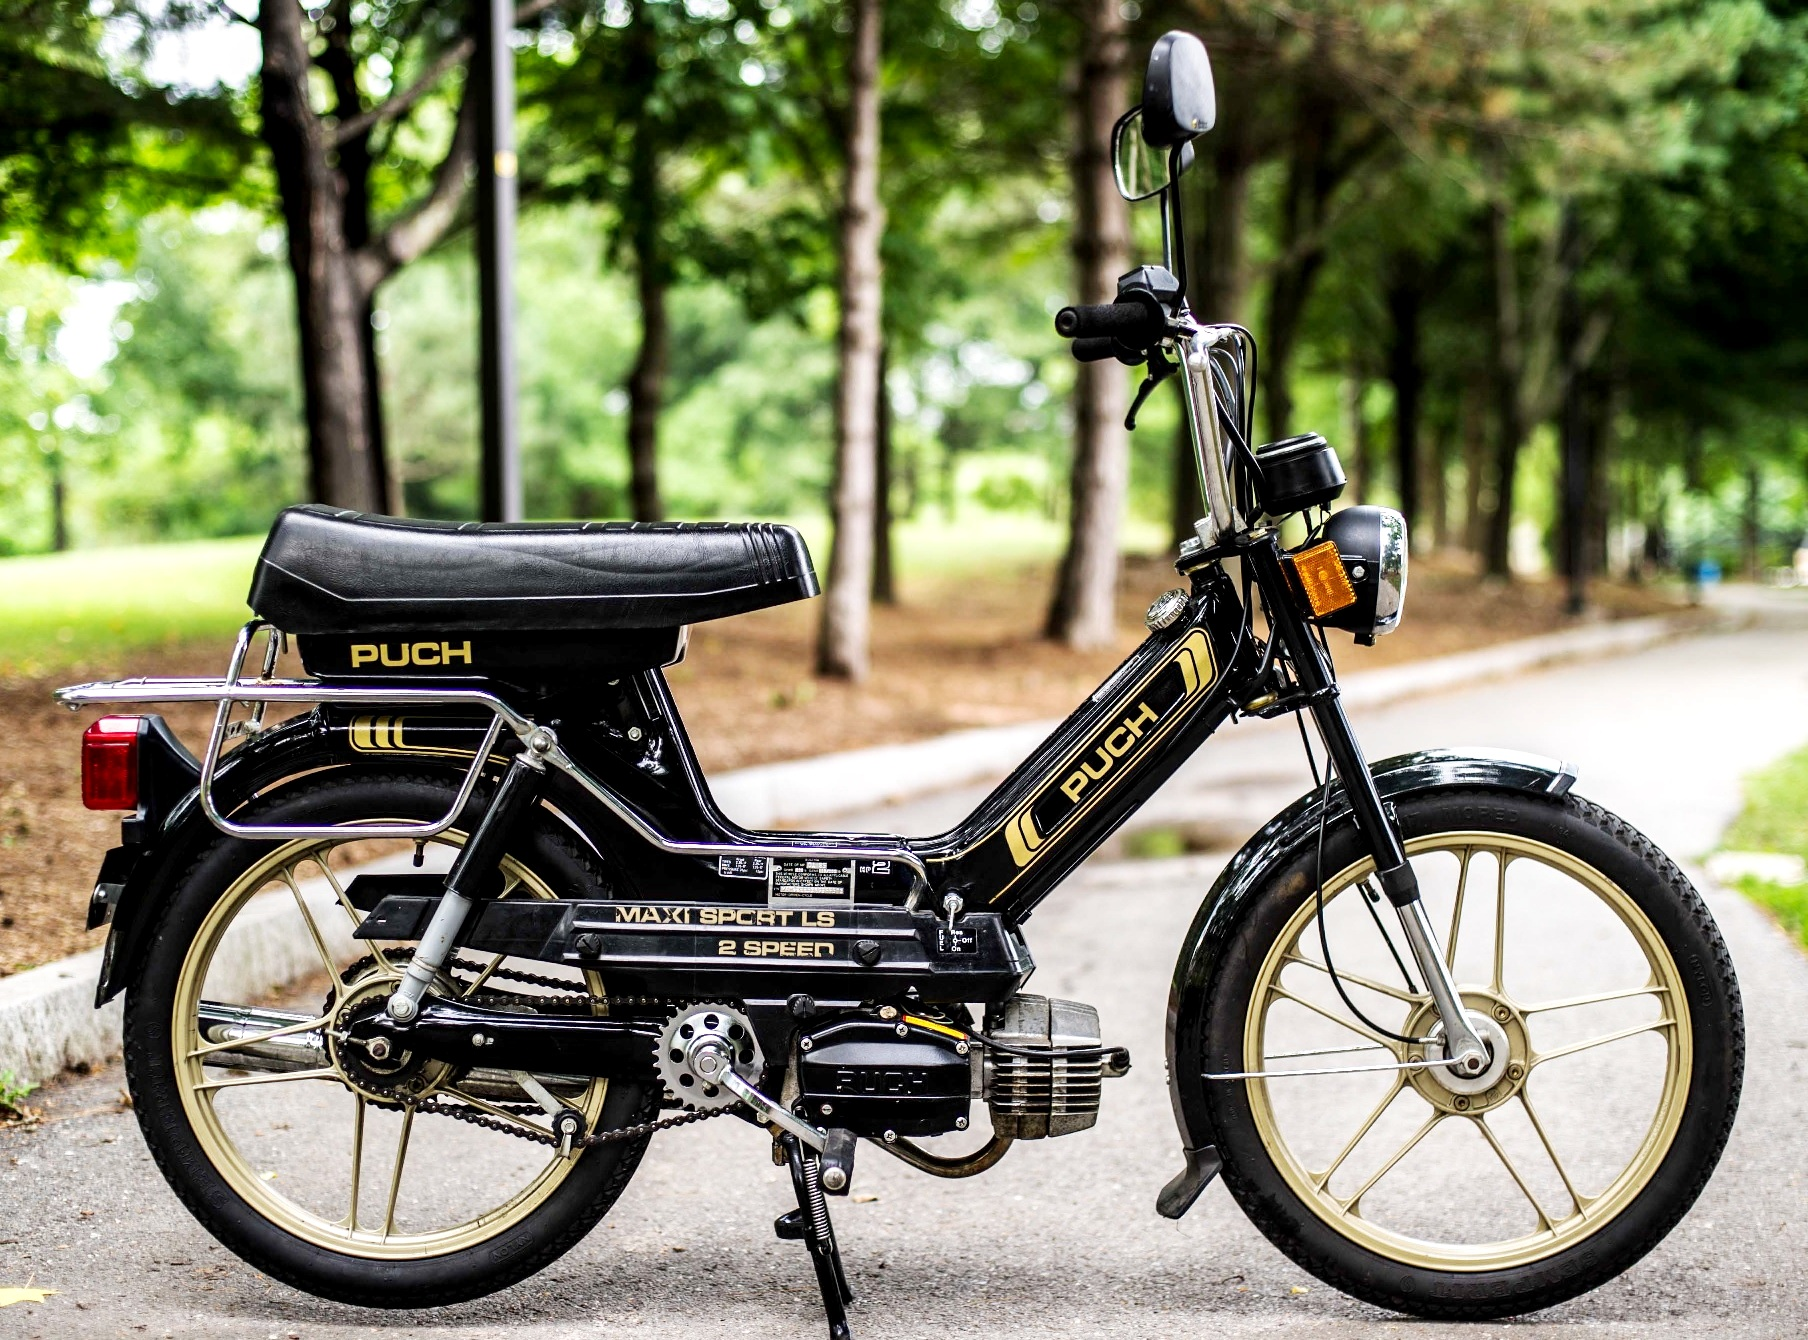 puch-moped-1974.jpg